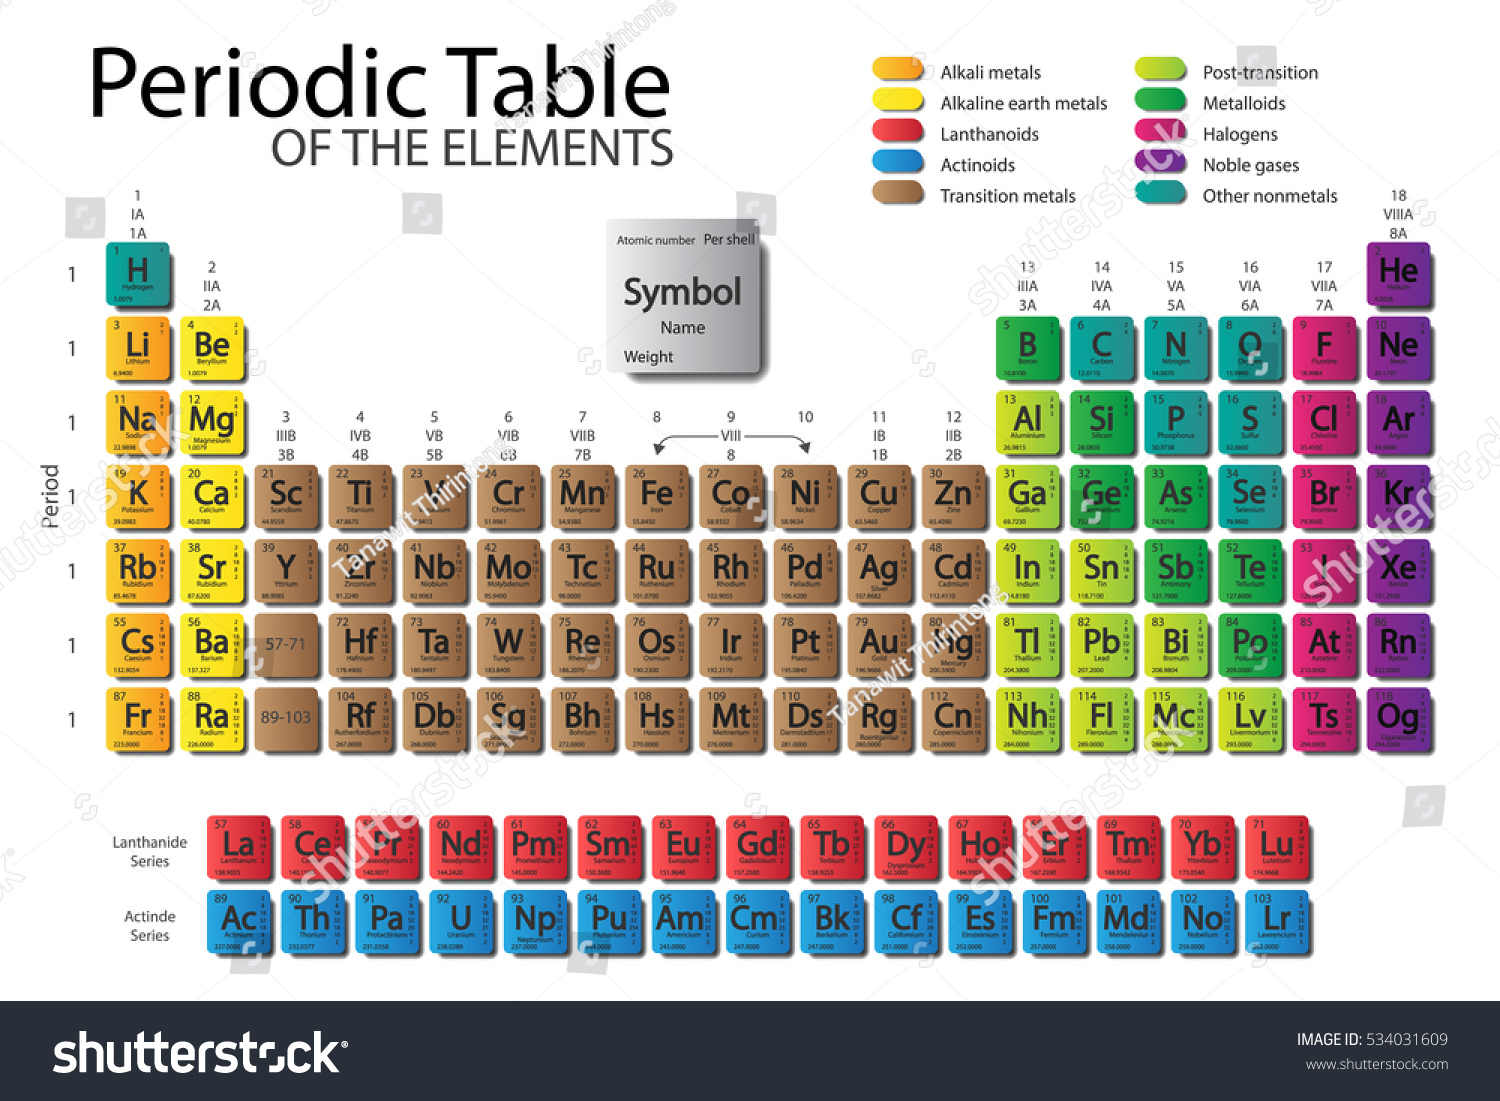 Colored periodic table of elements image collections periodic colored periodic table of elements images periodic table images colored periodic table of elements choice image gamestrikefo Images